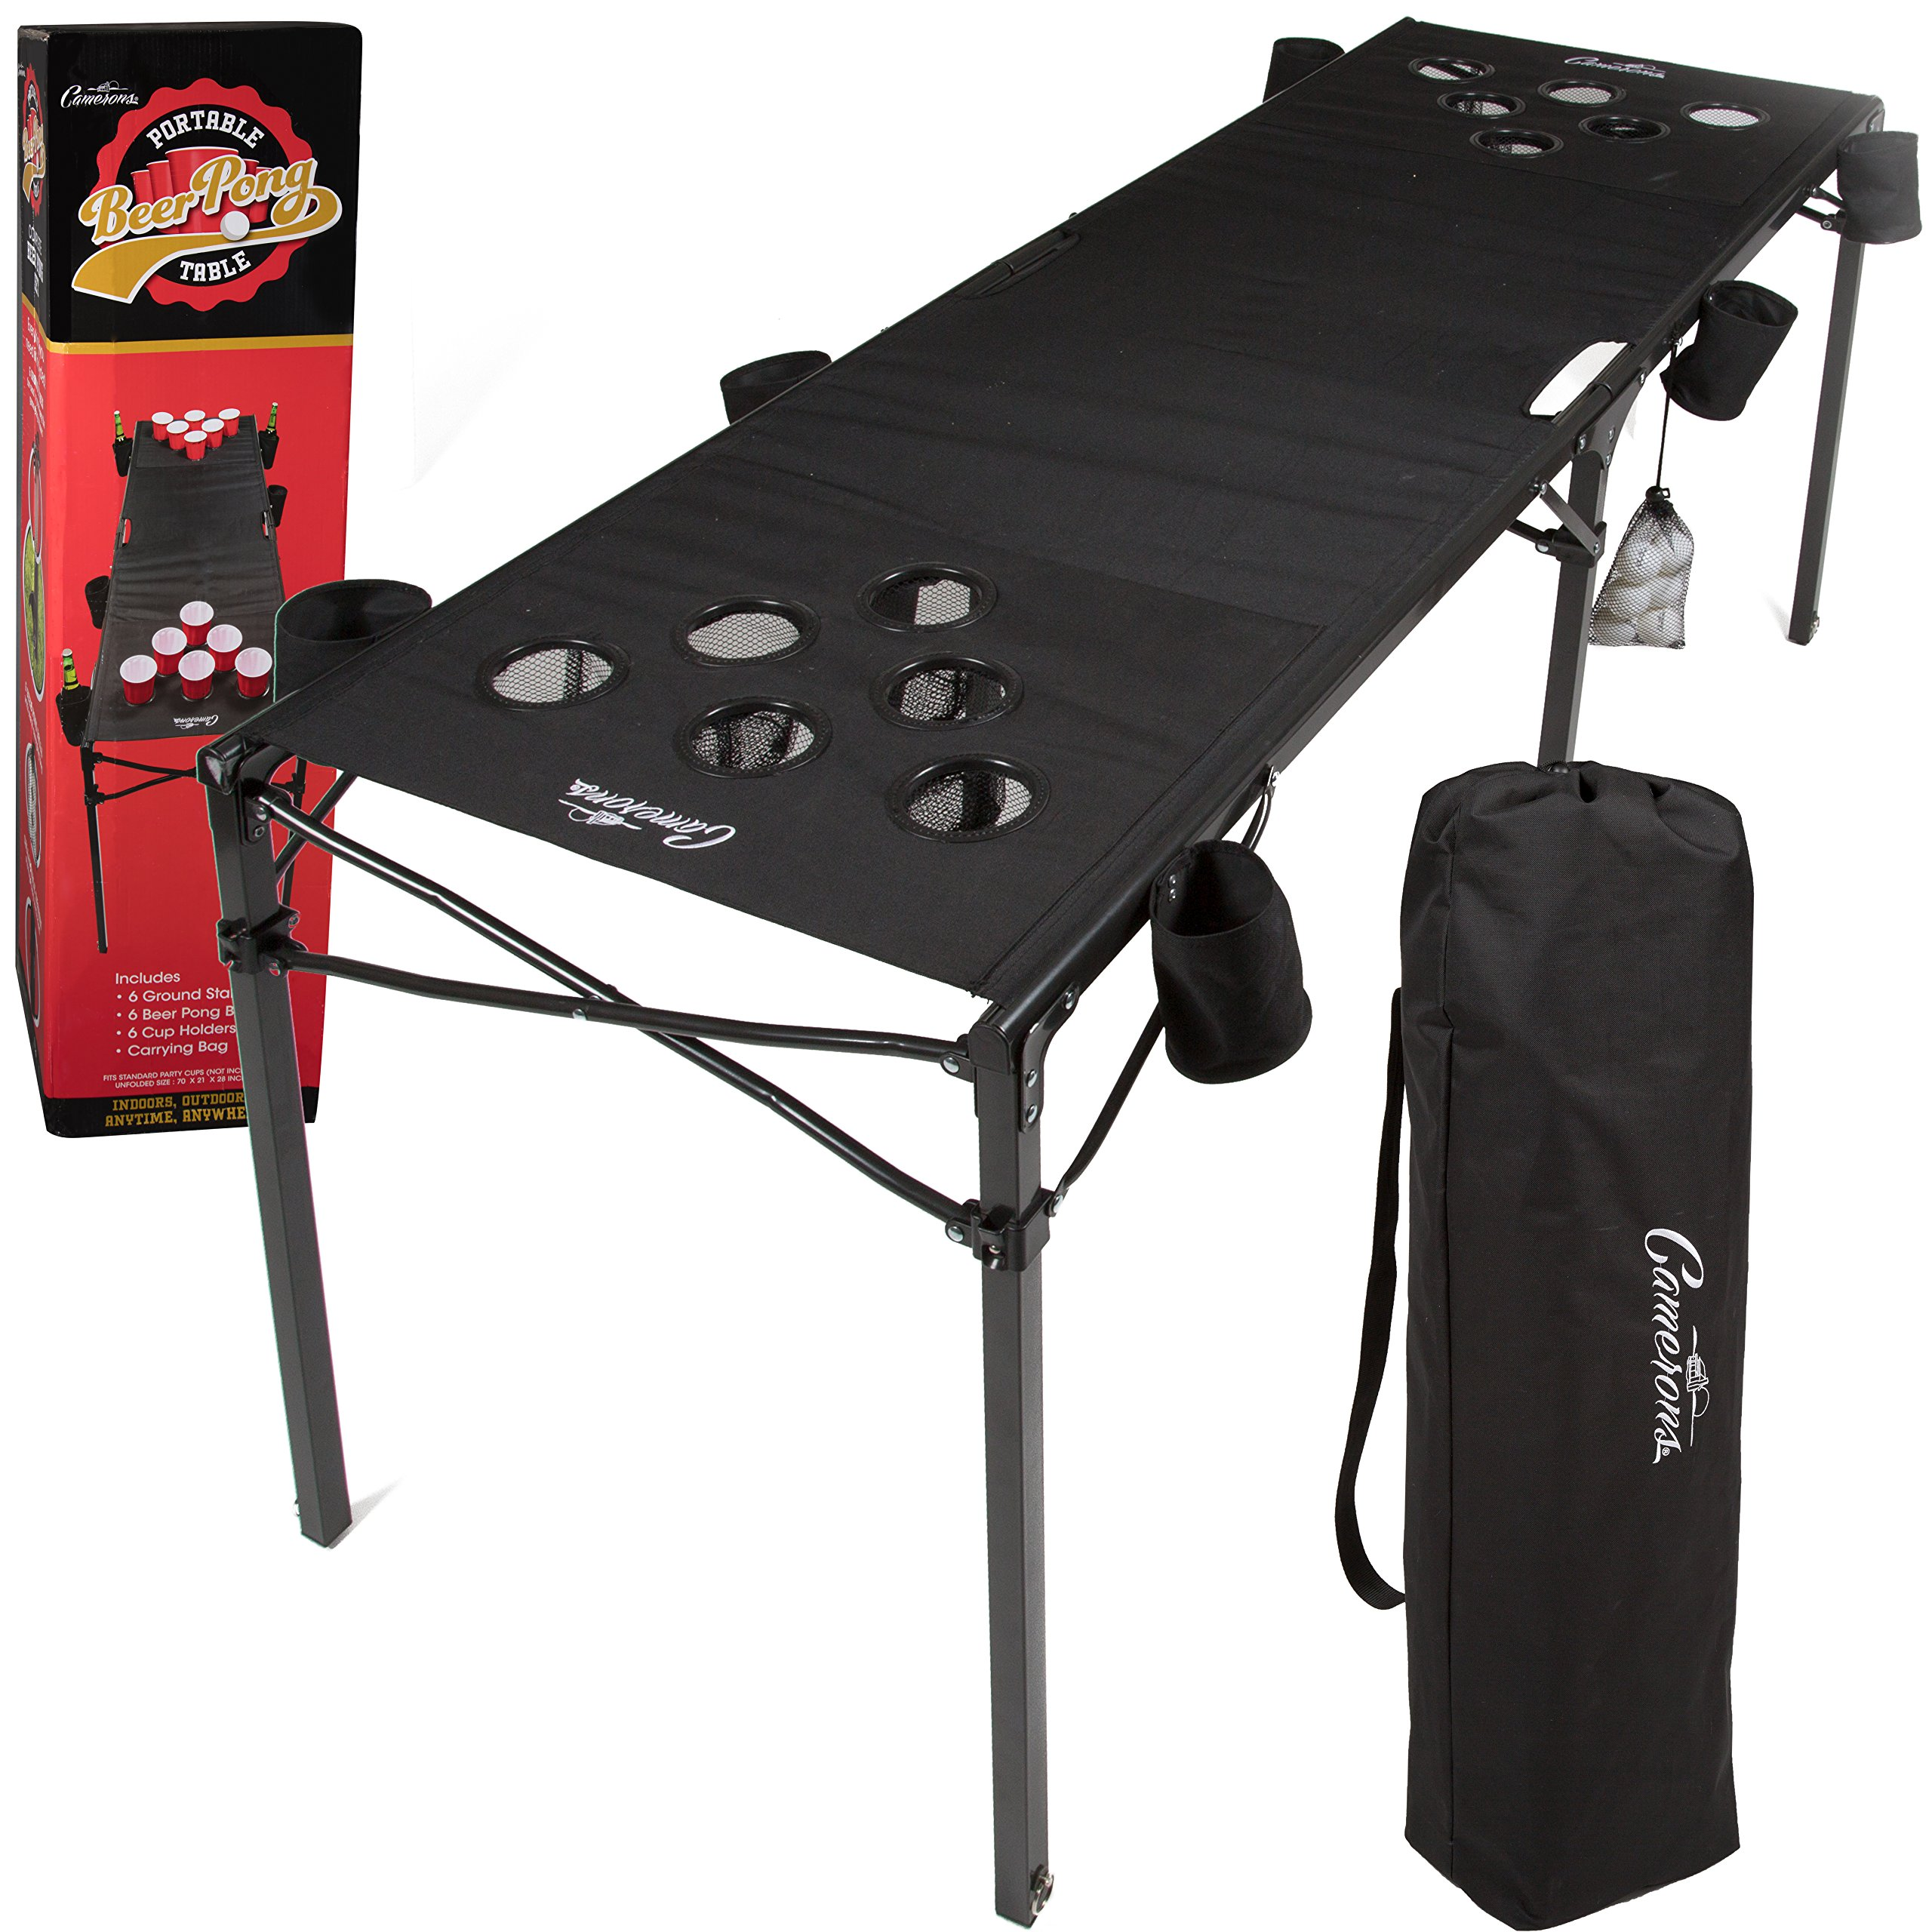 Camerons Portable Beer Pong Table- Collapsible 6 FT Beach Size Beirut Table w Cup Holders, 6 Balls, Stakes and Travel Bag by Camerons